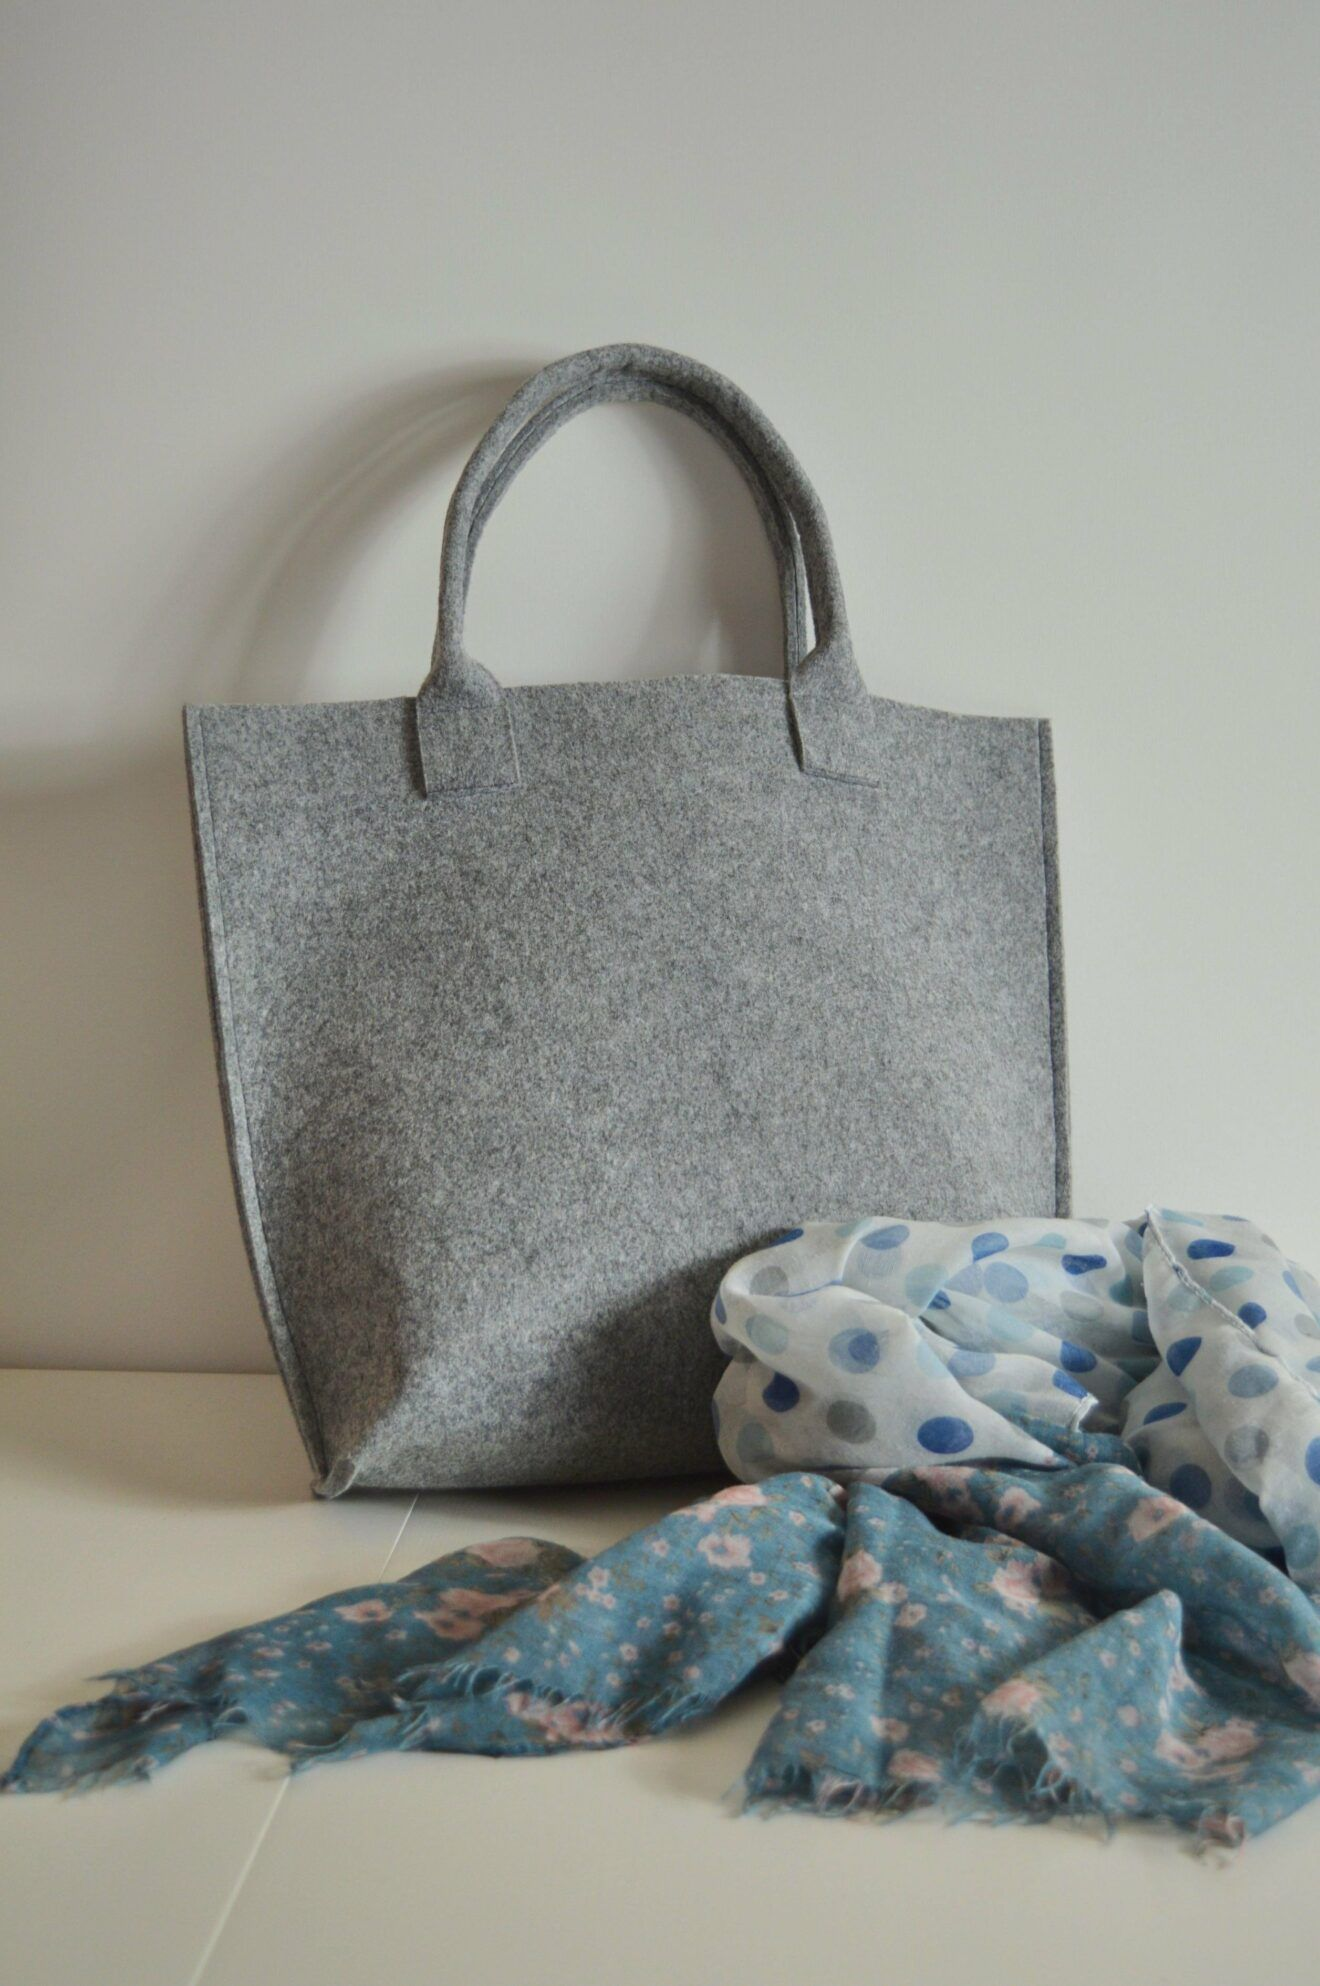 Felt Bag  Simple Sewing Tutorial - Felt bag, Felt tote bag, Felt purse, Felt tote, Tote bag pattern, Bags - Felt bags and accessories are widespread and popular  They can be found in various models and designs  I had an …